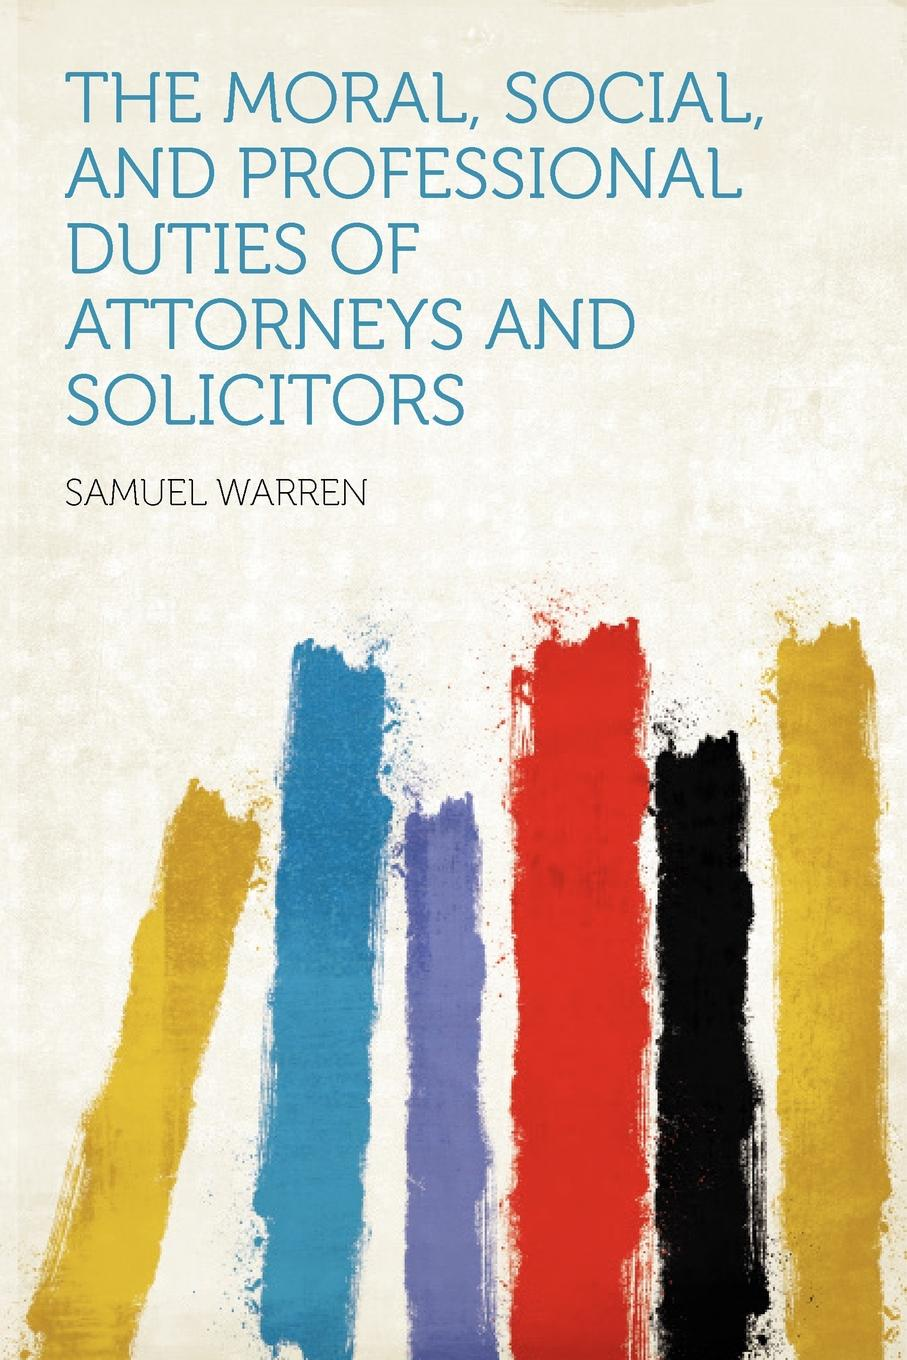 The Moral, Social, and Professional Duties of Attorneys Solicitors